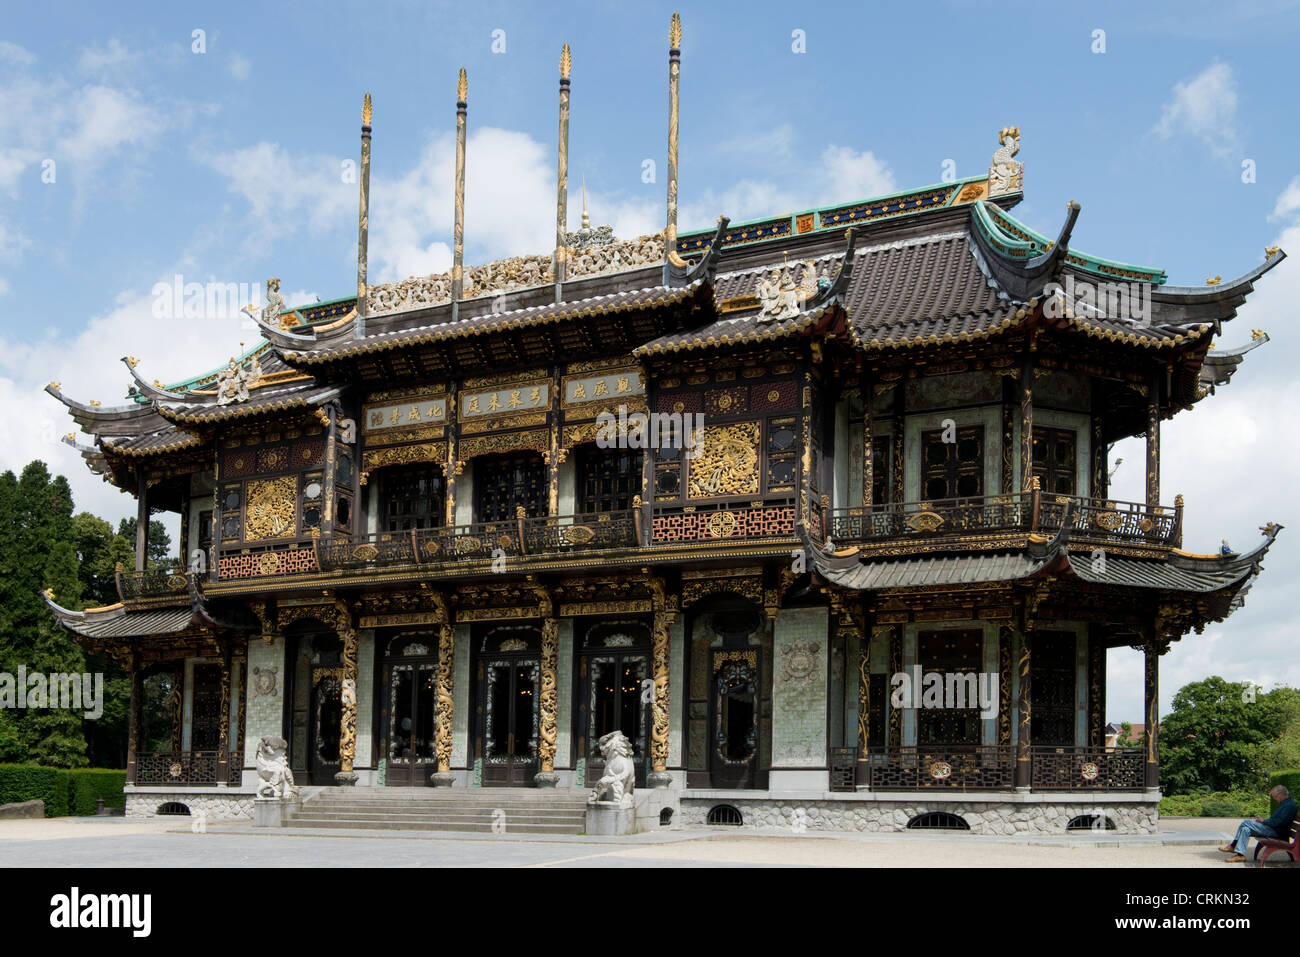 Museum of Far Eastern Art, Brussels, Belgium -1 - Stock Image